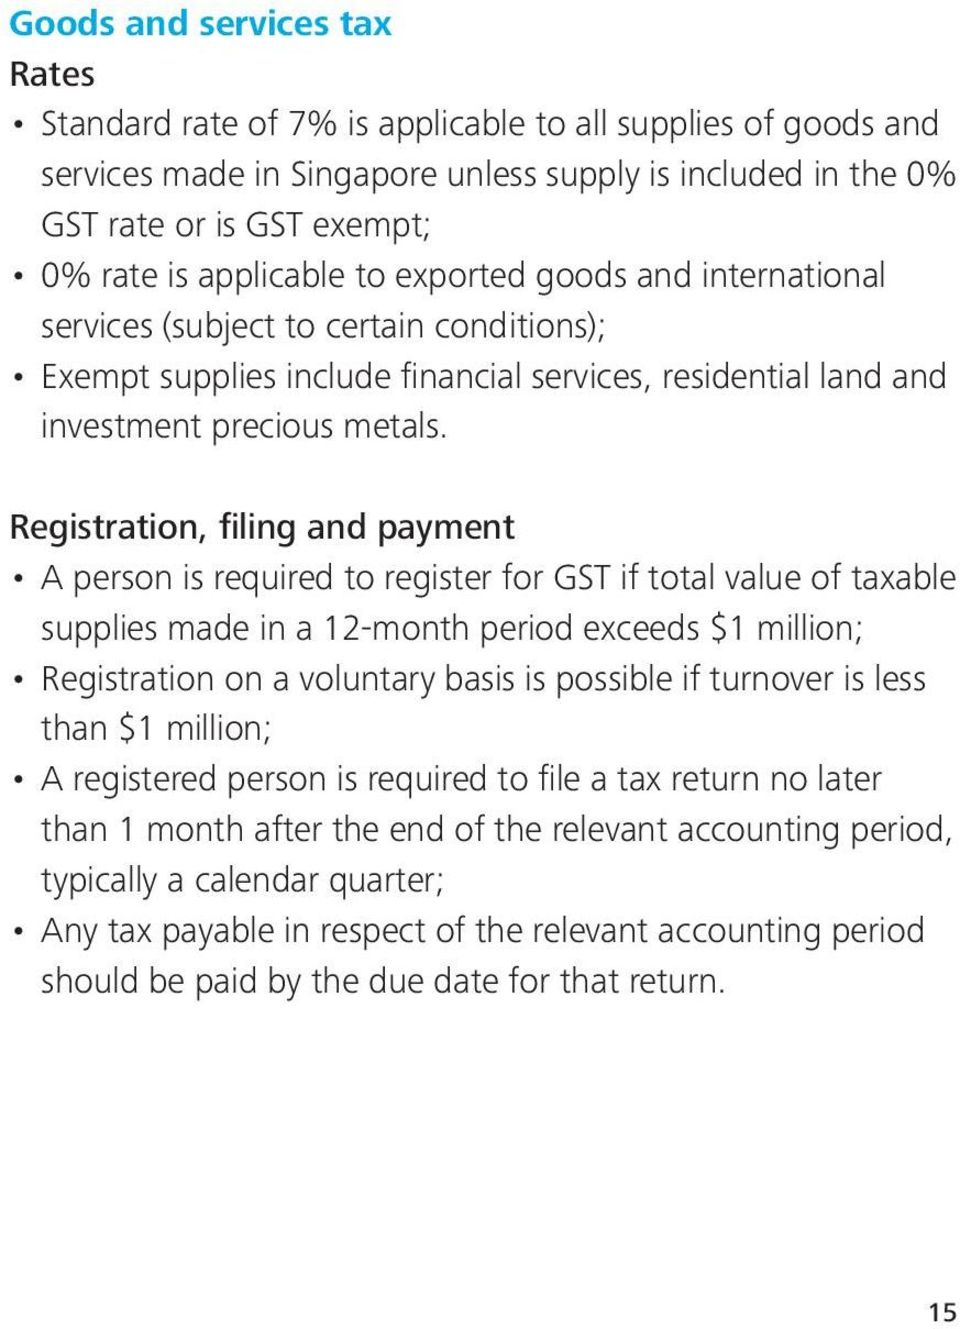 Registration, filing and payment A person is required to register for GST if total value of taxable supplies made in a 12-month period exceeds $1 million; Registration on a voluntary basis is